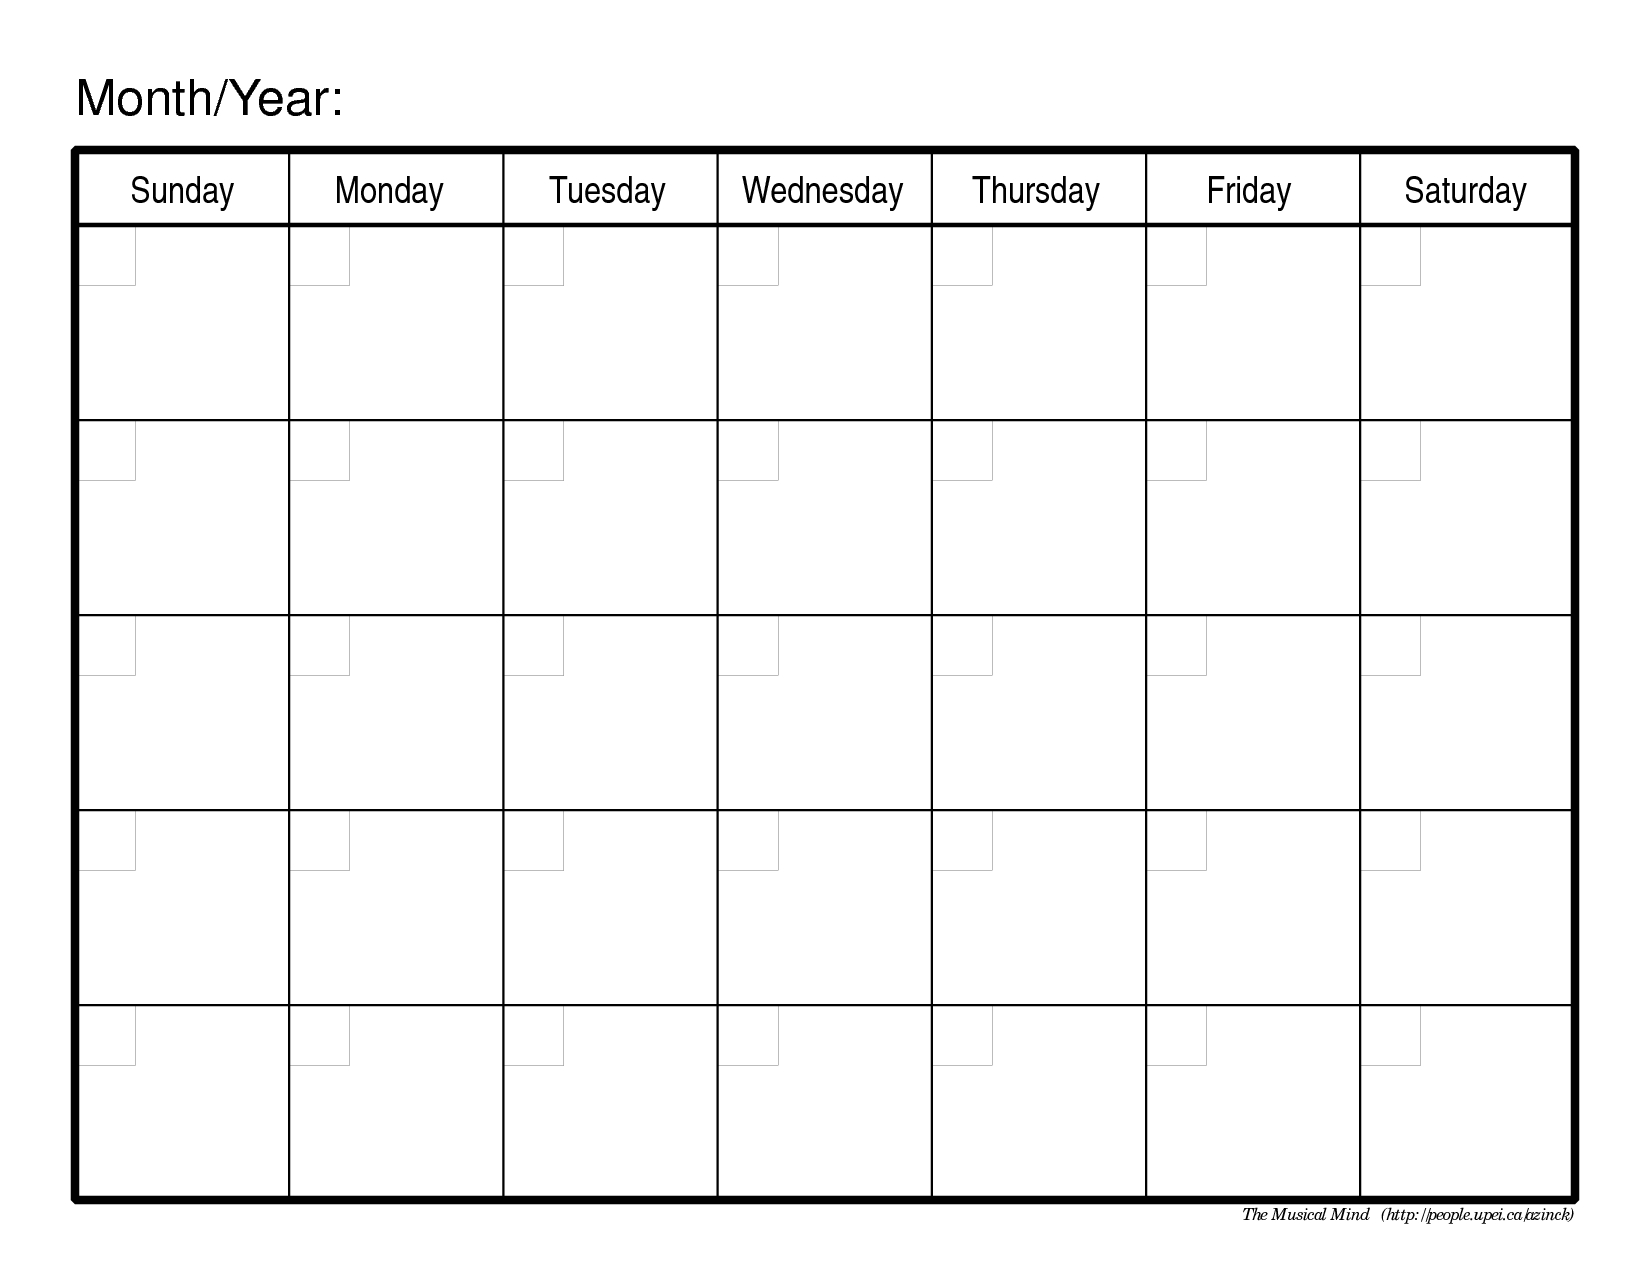 Monthly Calendar Template | Blank Calendar Pages, Printable with Empty Calendar Printable